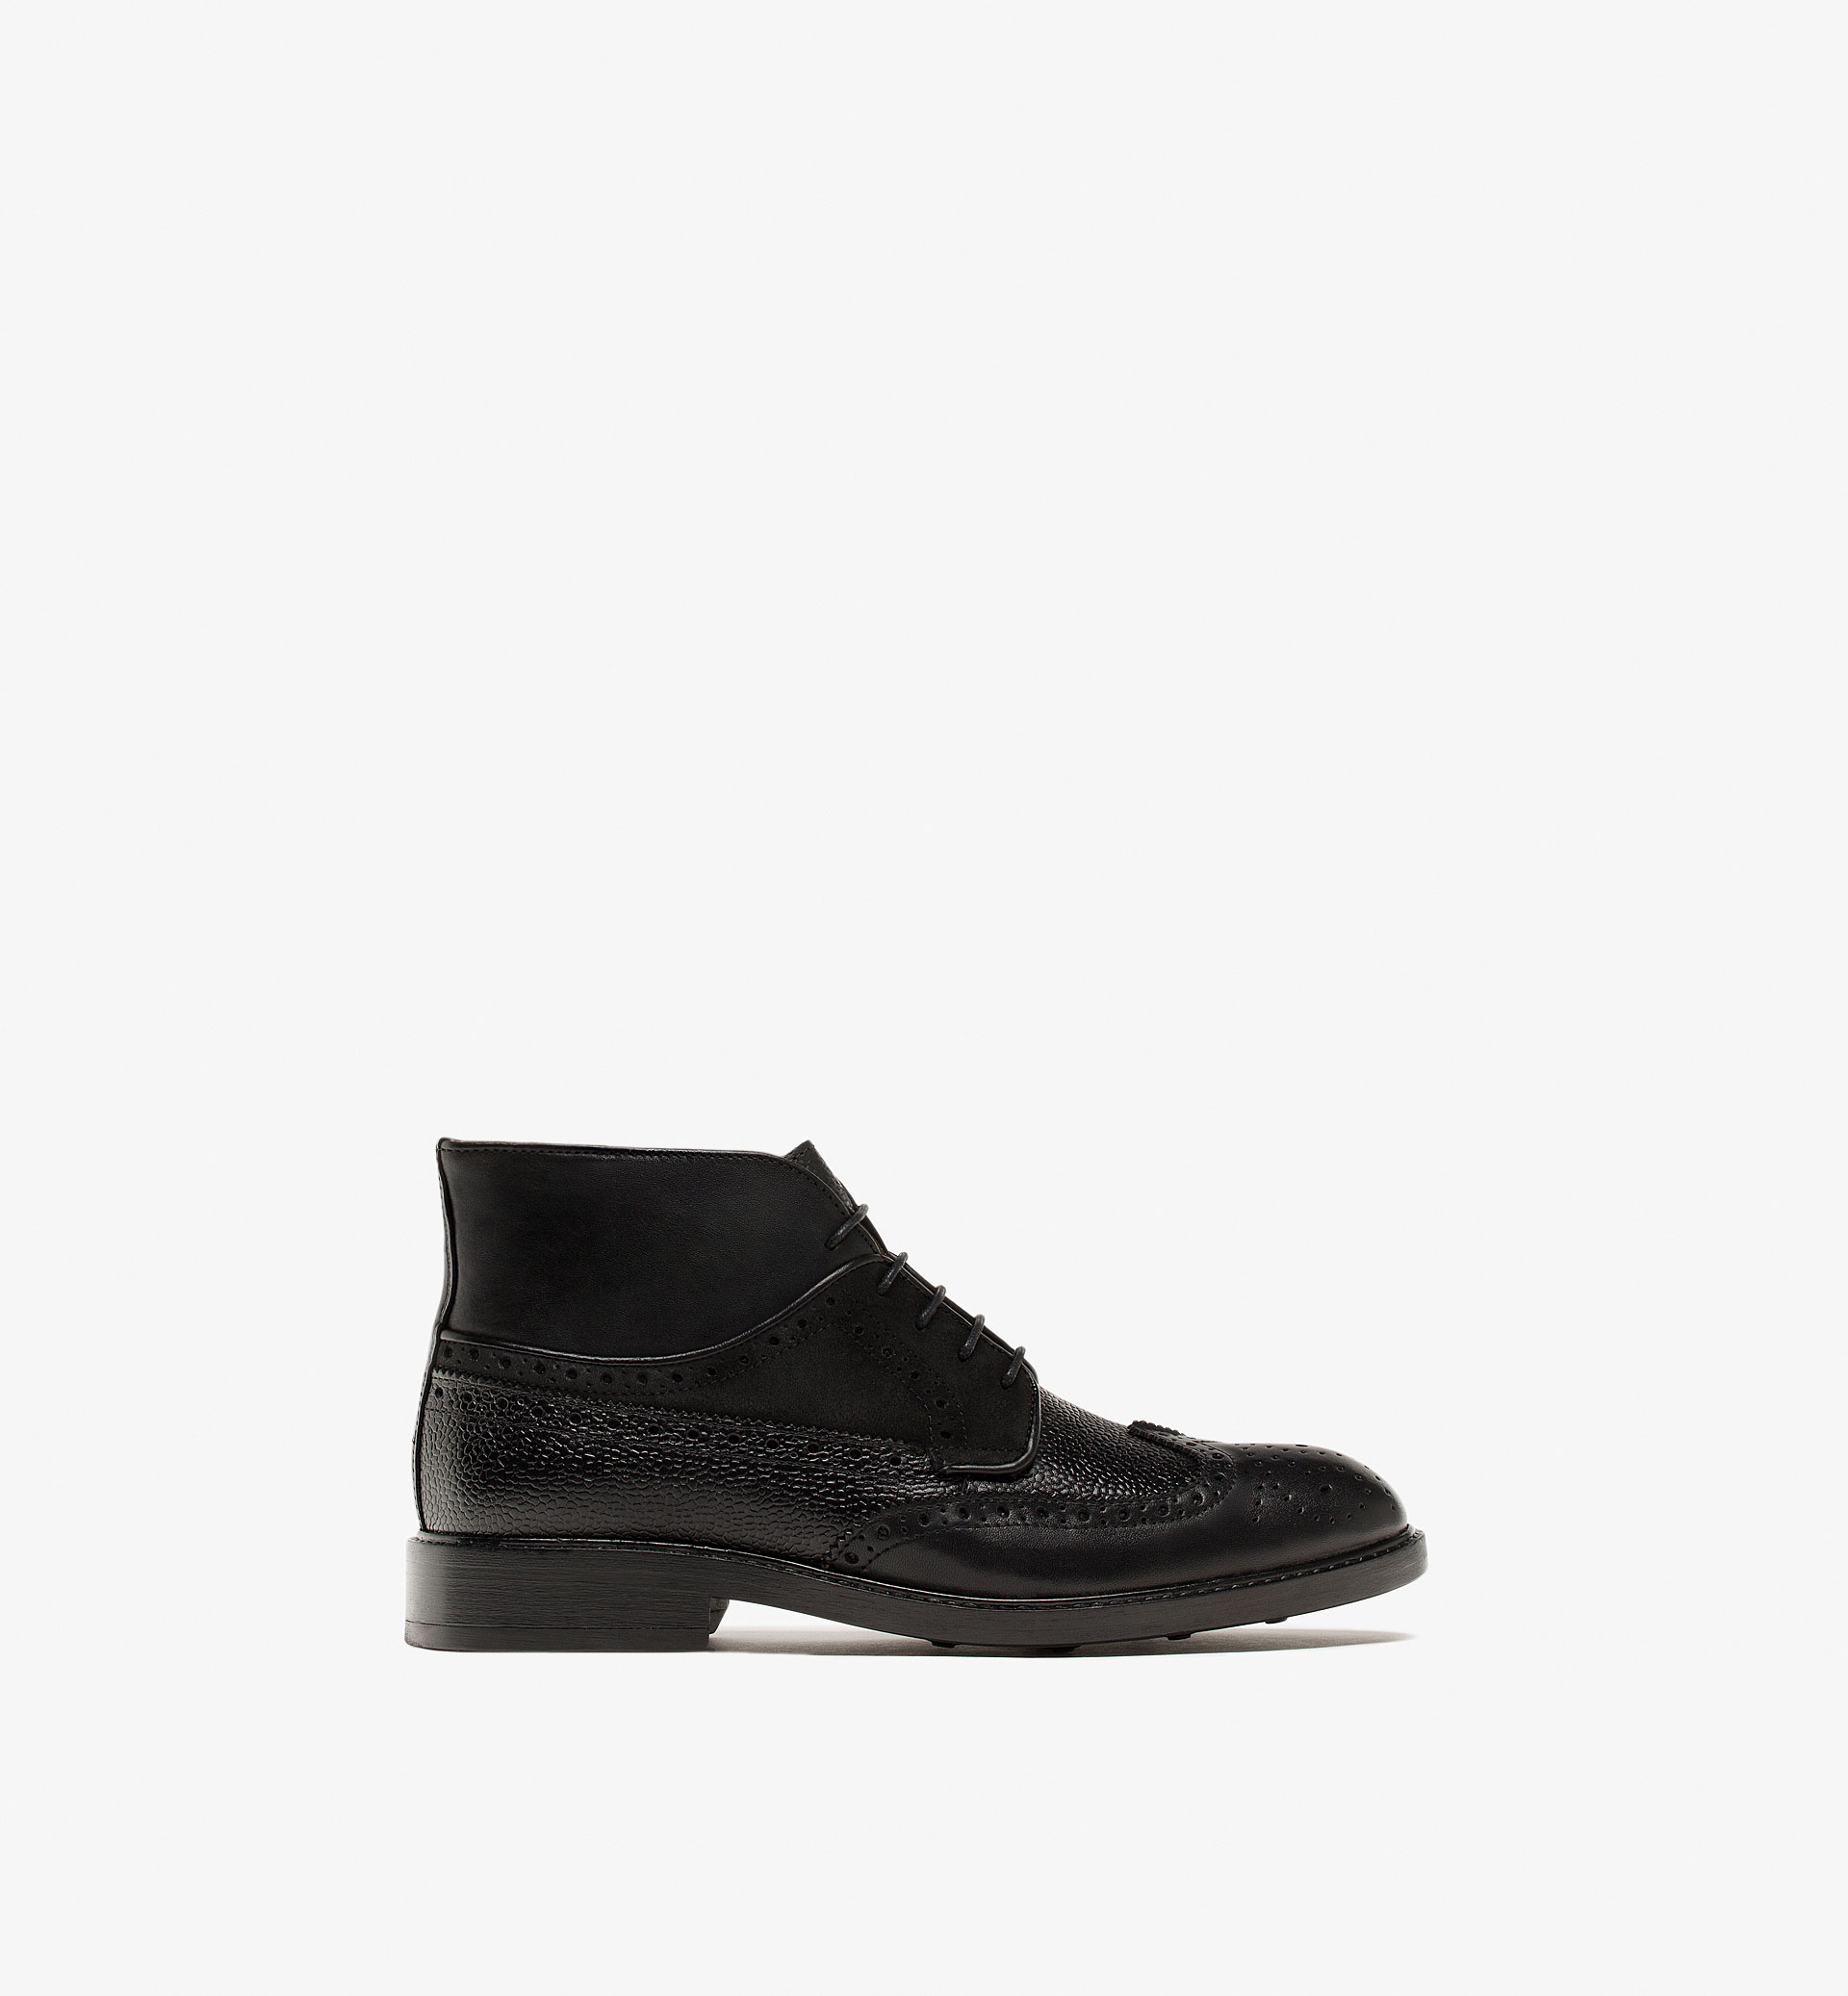 BROGUED LEATHER ANKLE BOOTS